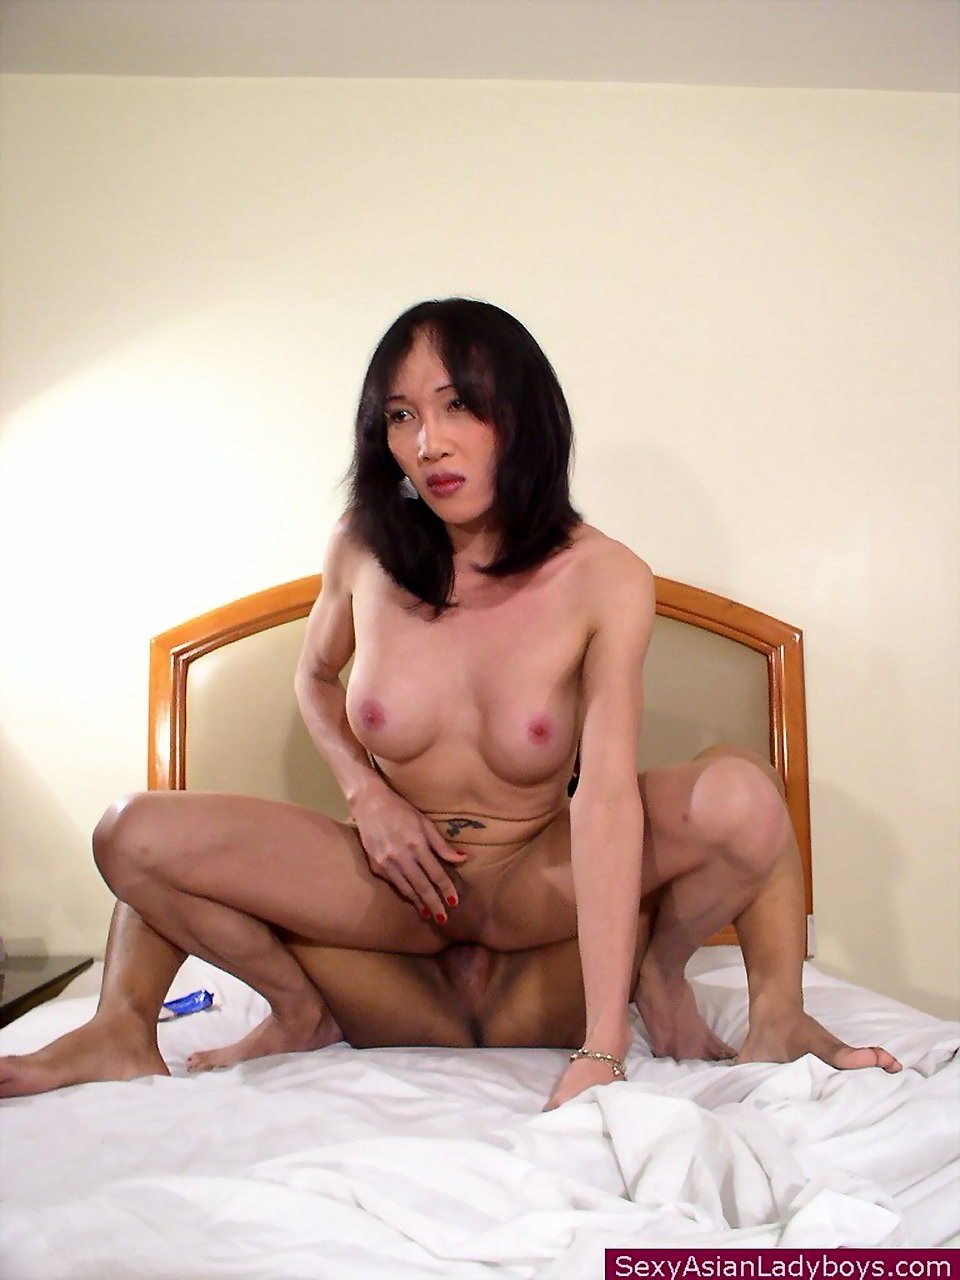 Two Tgirls Playing With Sex Toys Before Nailing Each Other